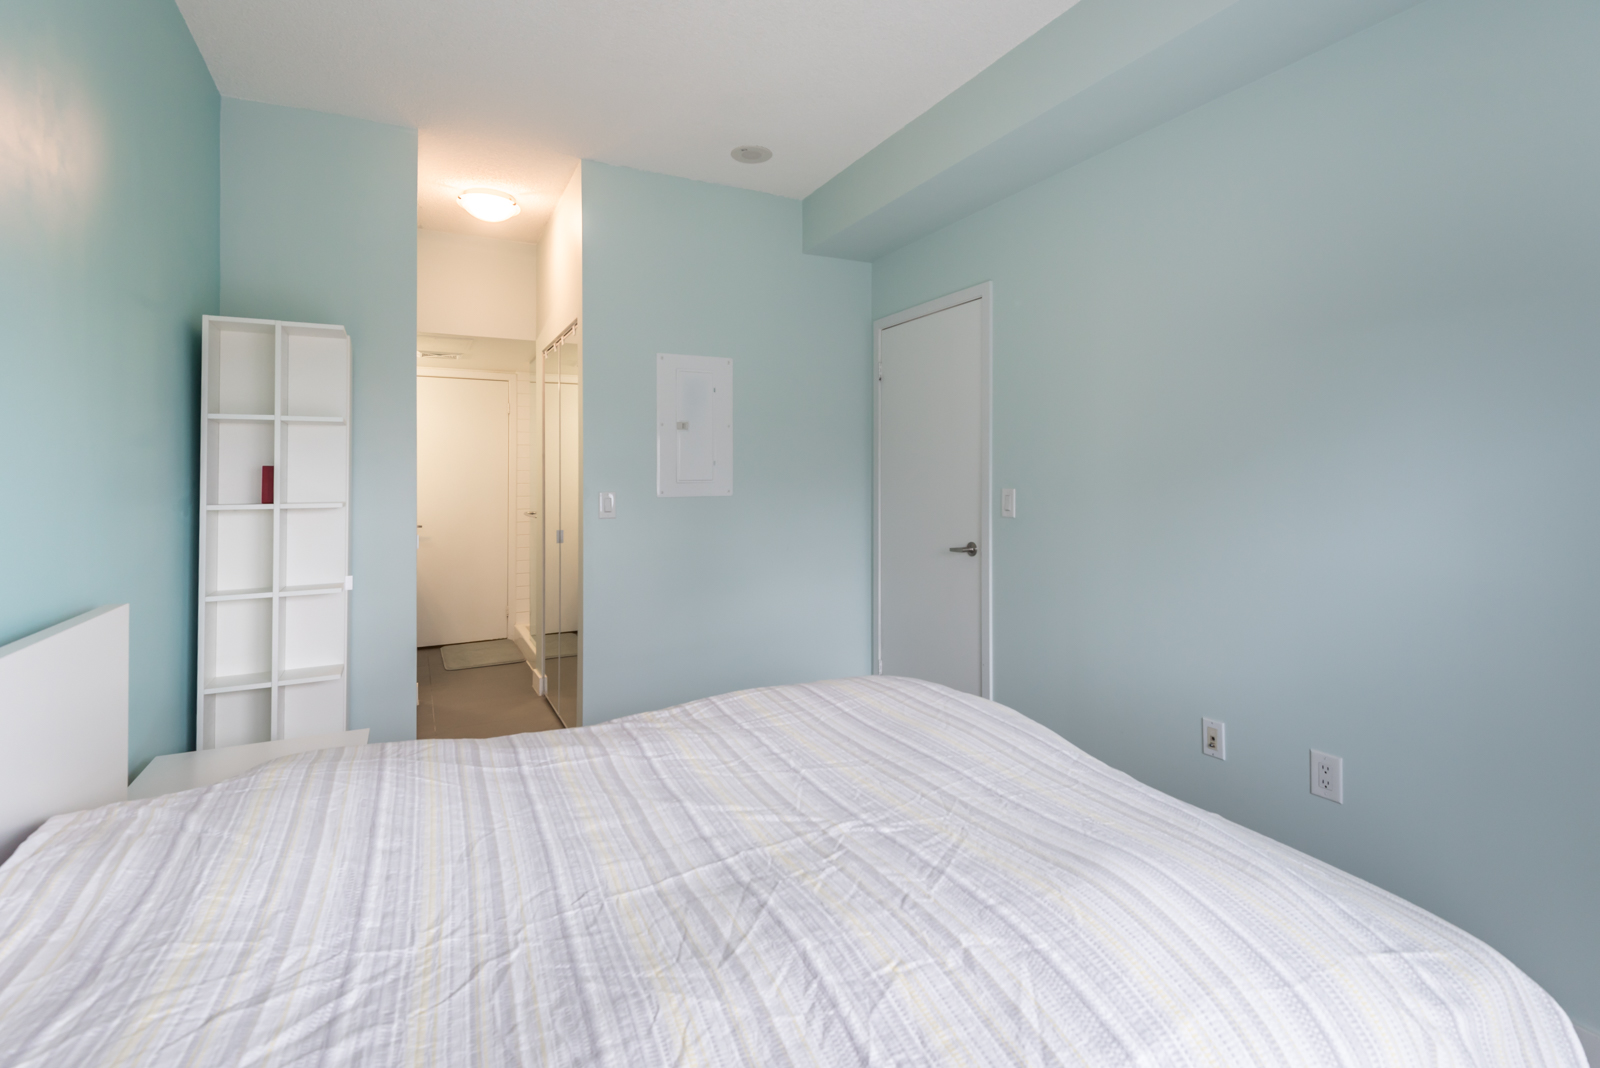 Another side of the bedroom. We see the closet and also the bathroom door.